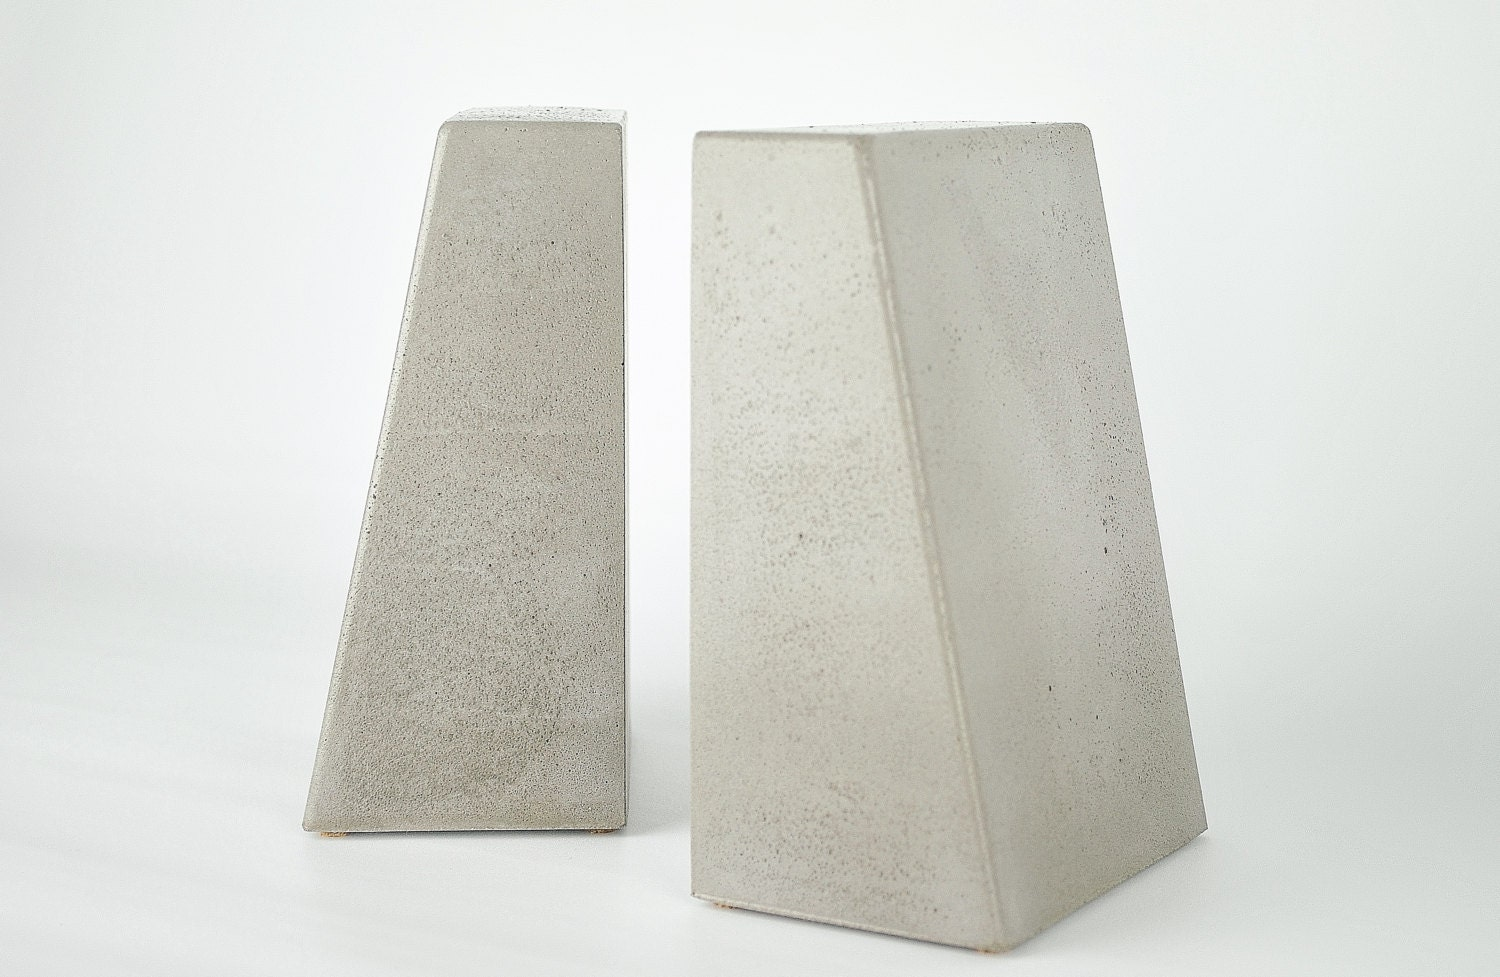 modern concrete bookends heavy bookends kitchen book ends - 🔎zoom